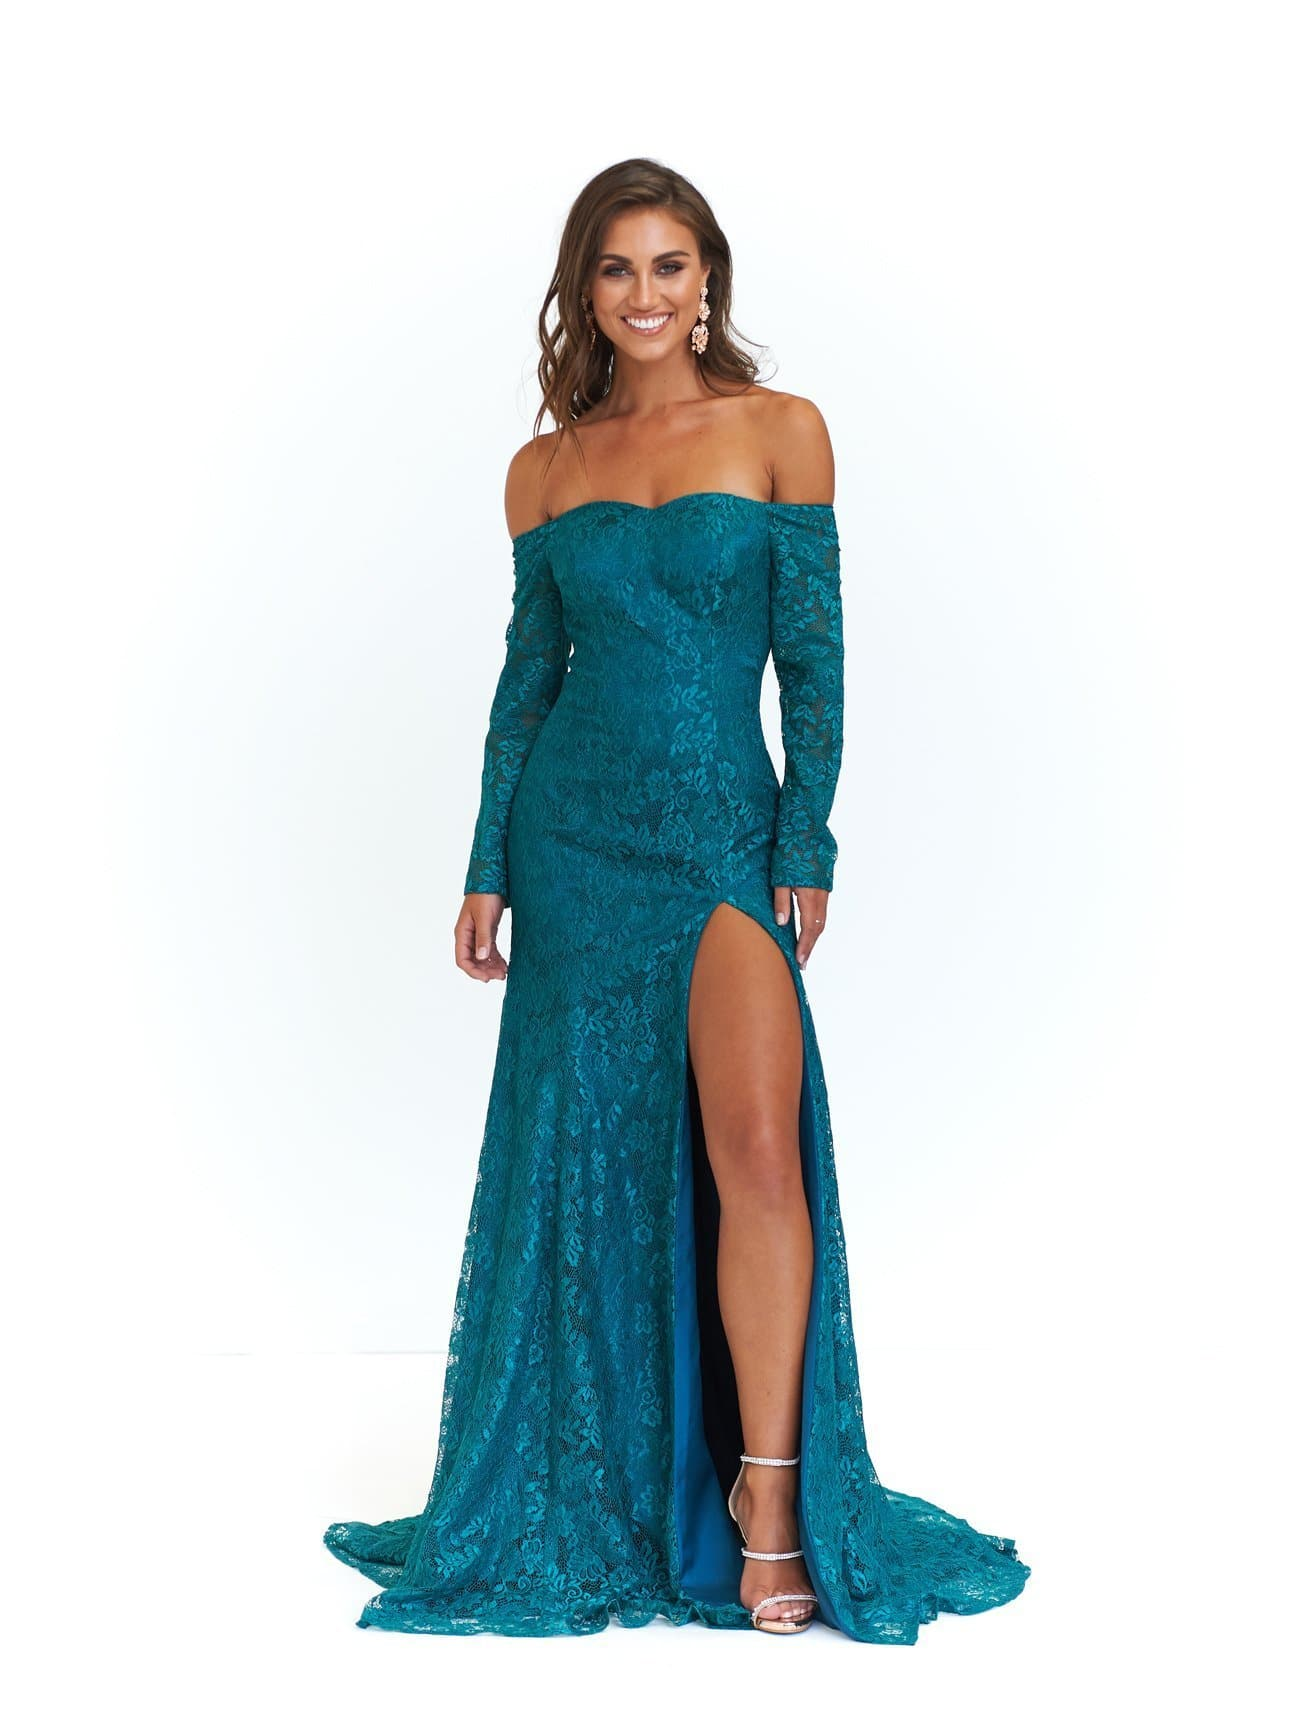 f7a3d17f3f93 A&N Duaa - Teal Off-Shoulder Gown with Long Sleeves – A&N Luxe Label